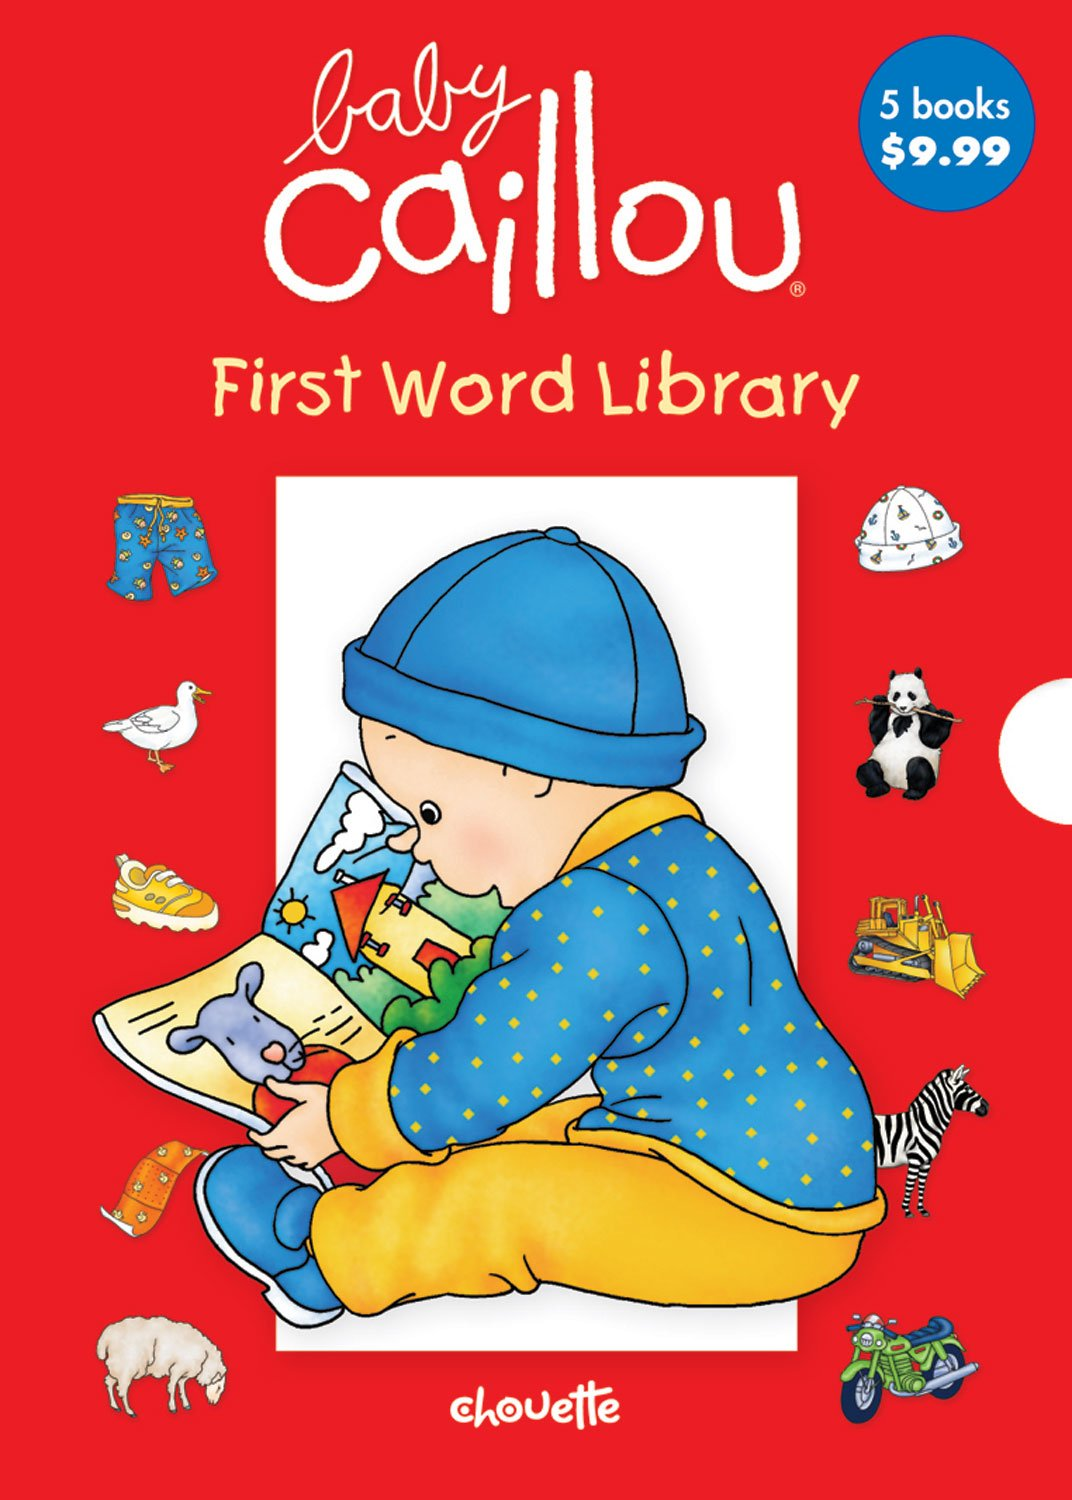 Baby Caillou First Word Library ebook